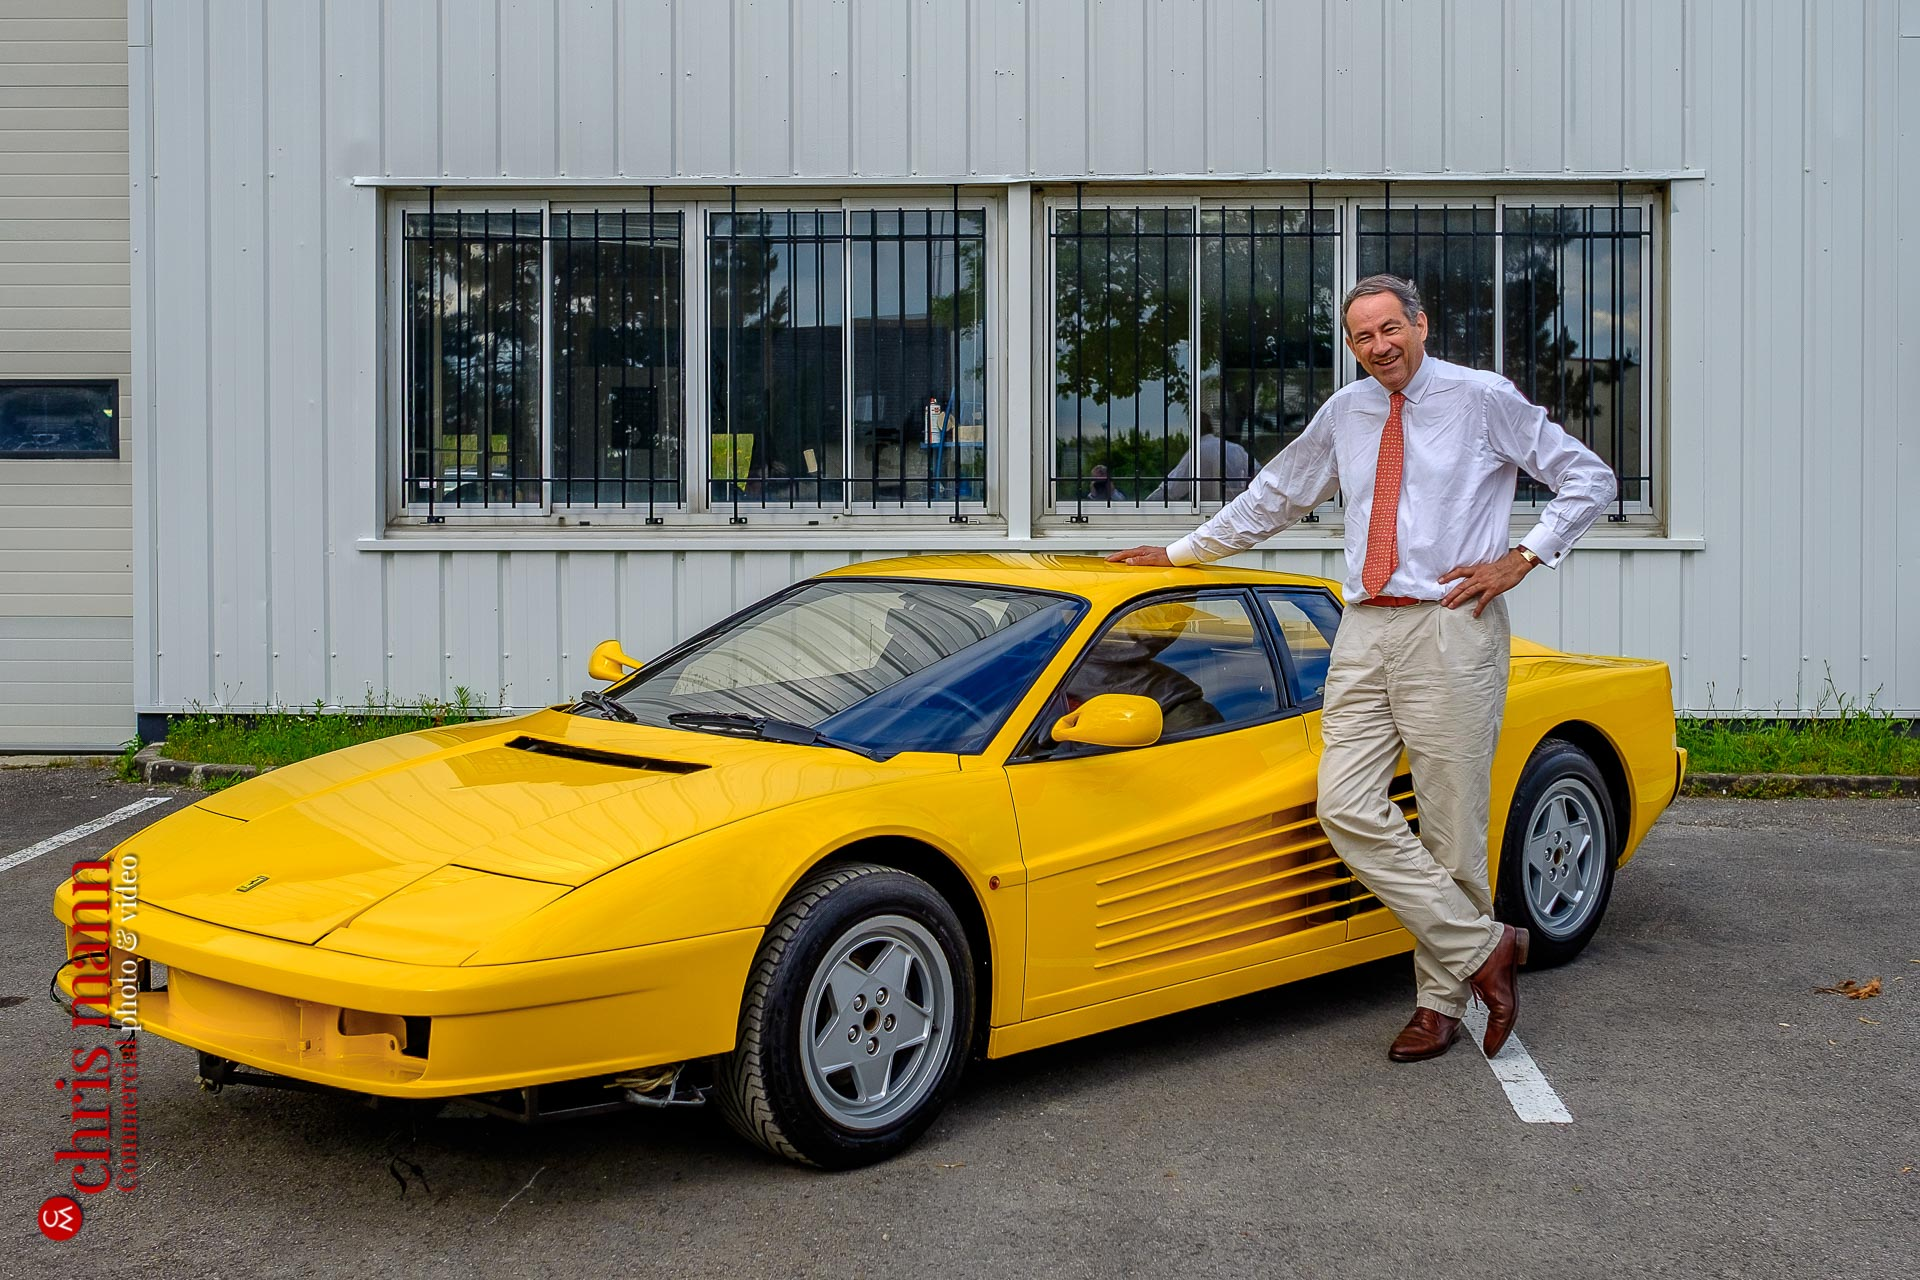 Bruno Paillard and Ferrari Testarossa